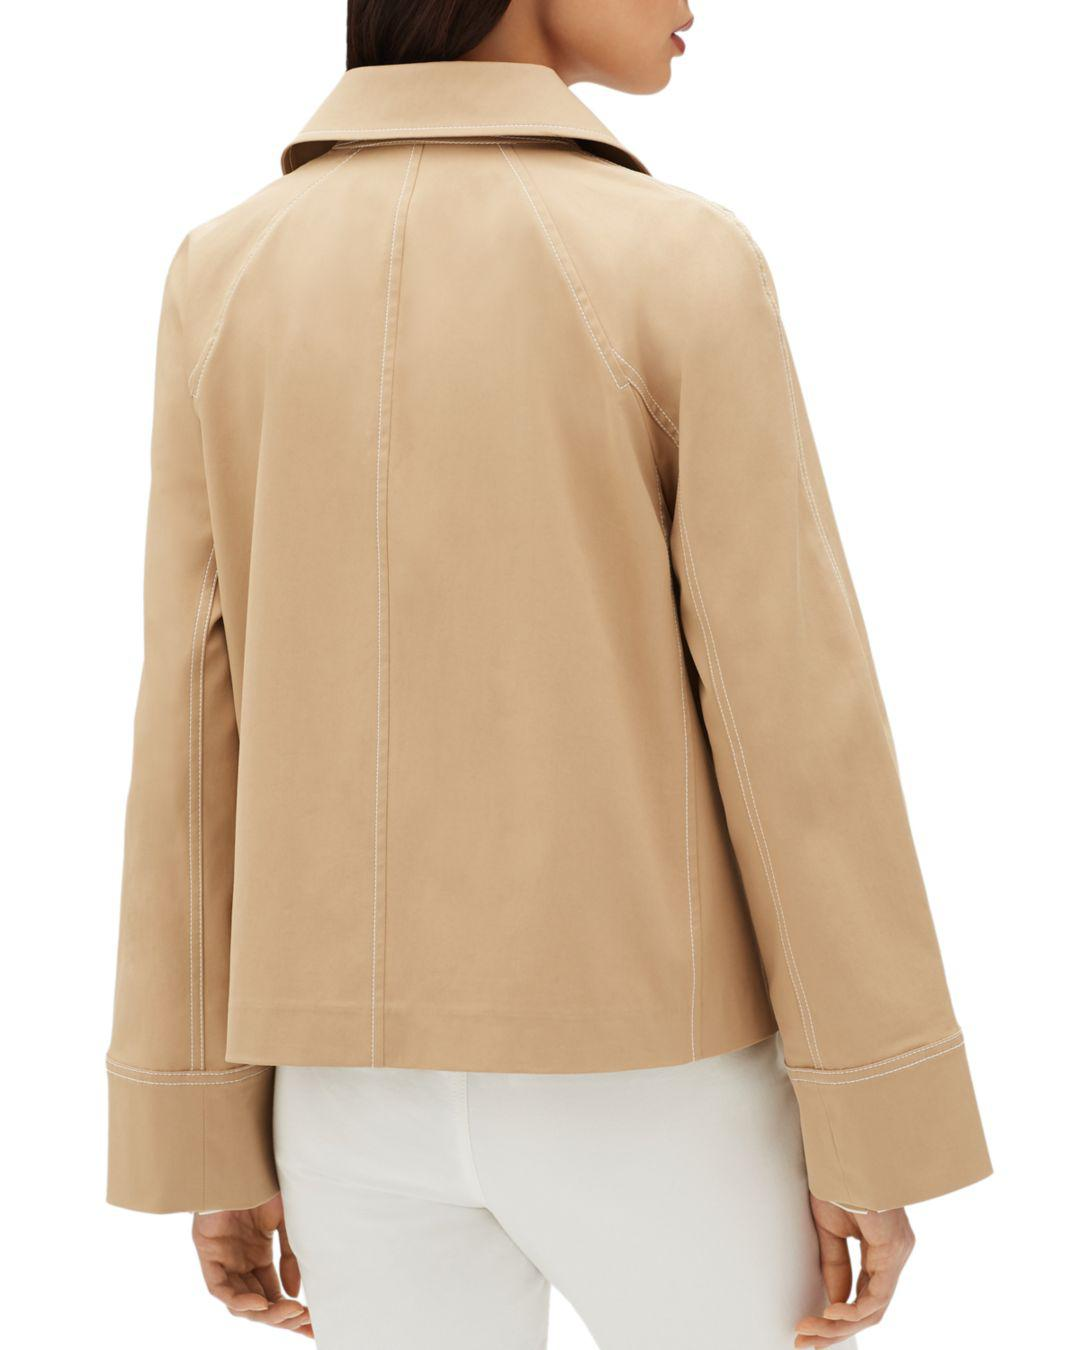 1c37643fbf3 Lyst - Lafayette 148 New York Asher Double Breasted Jacket in Natural -  Save 40%